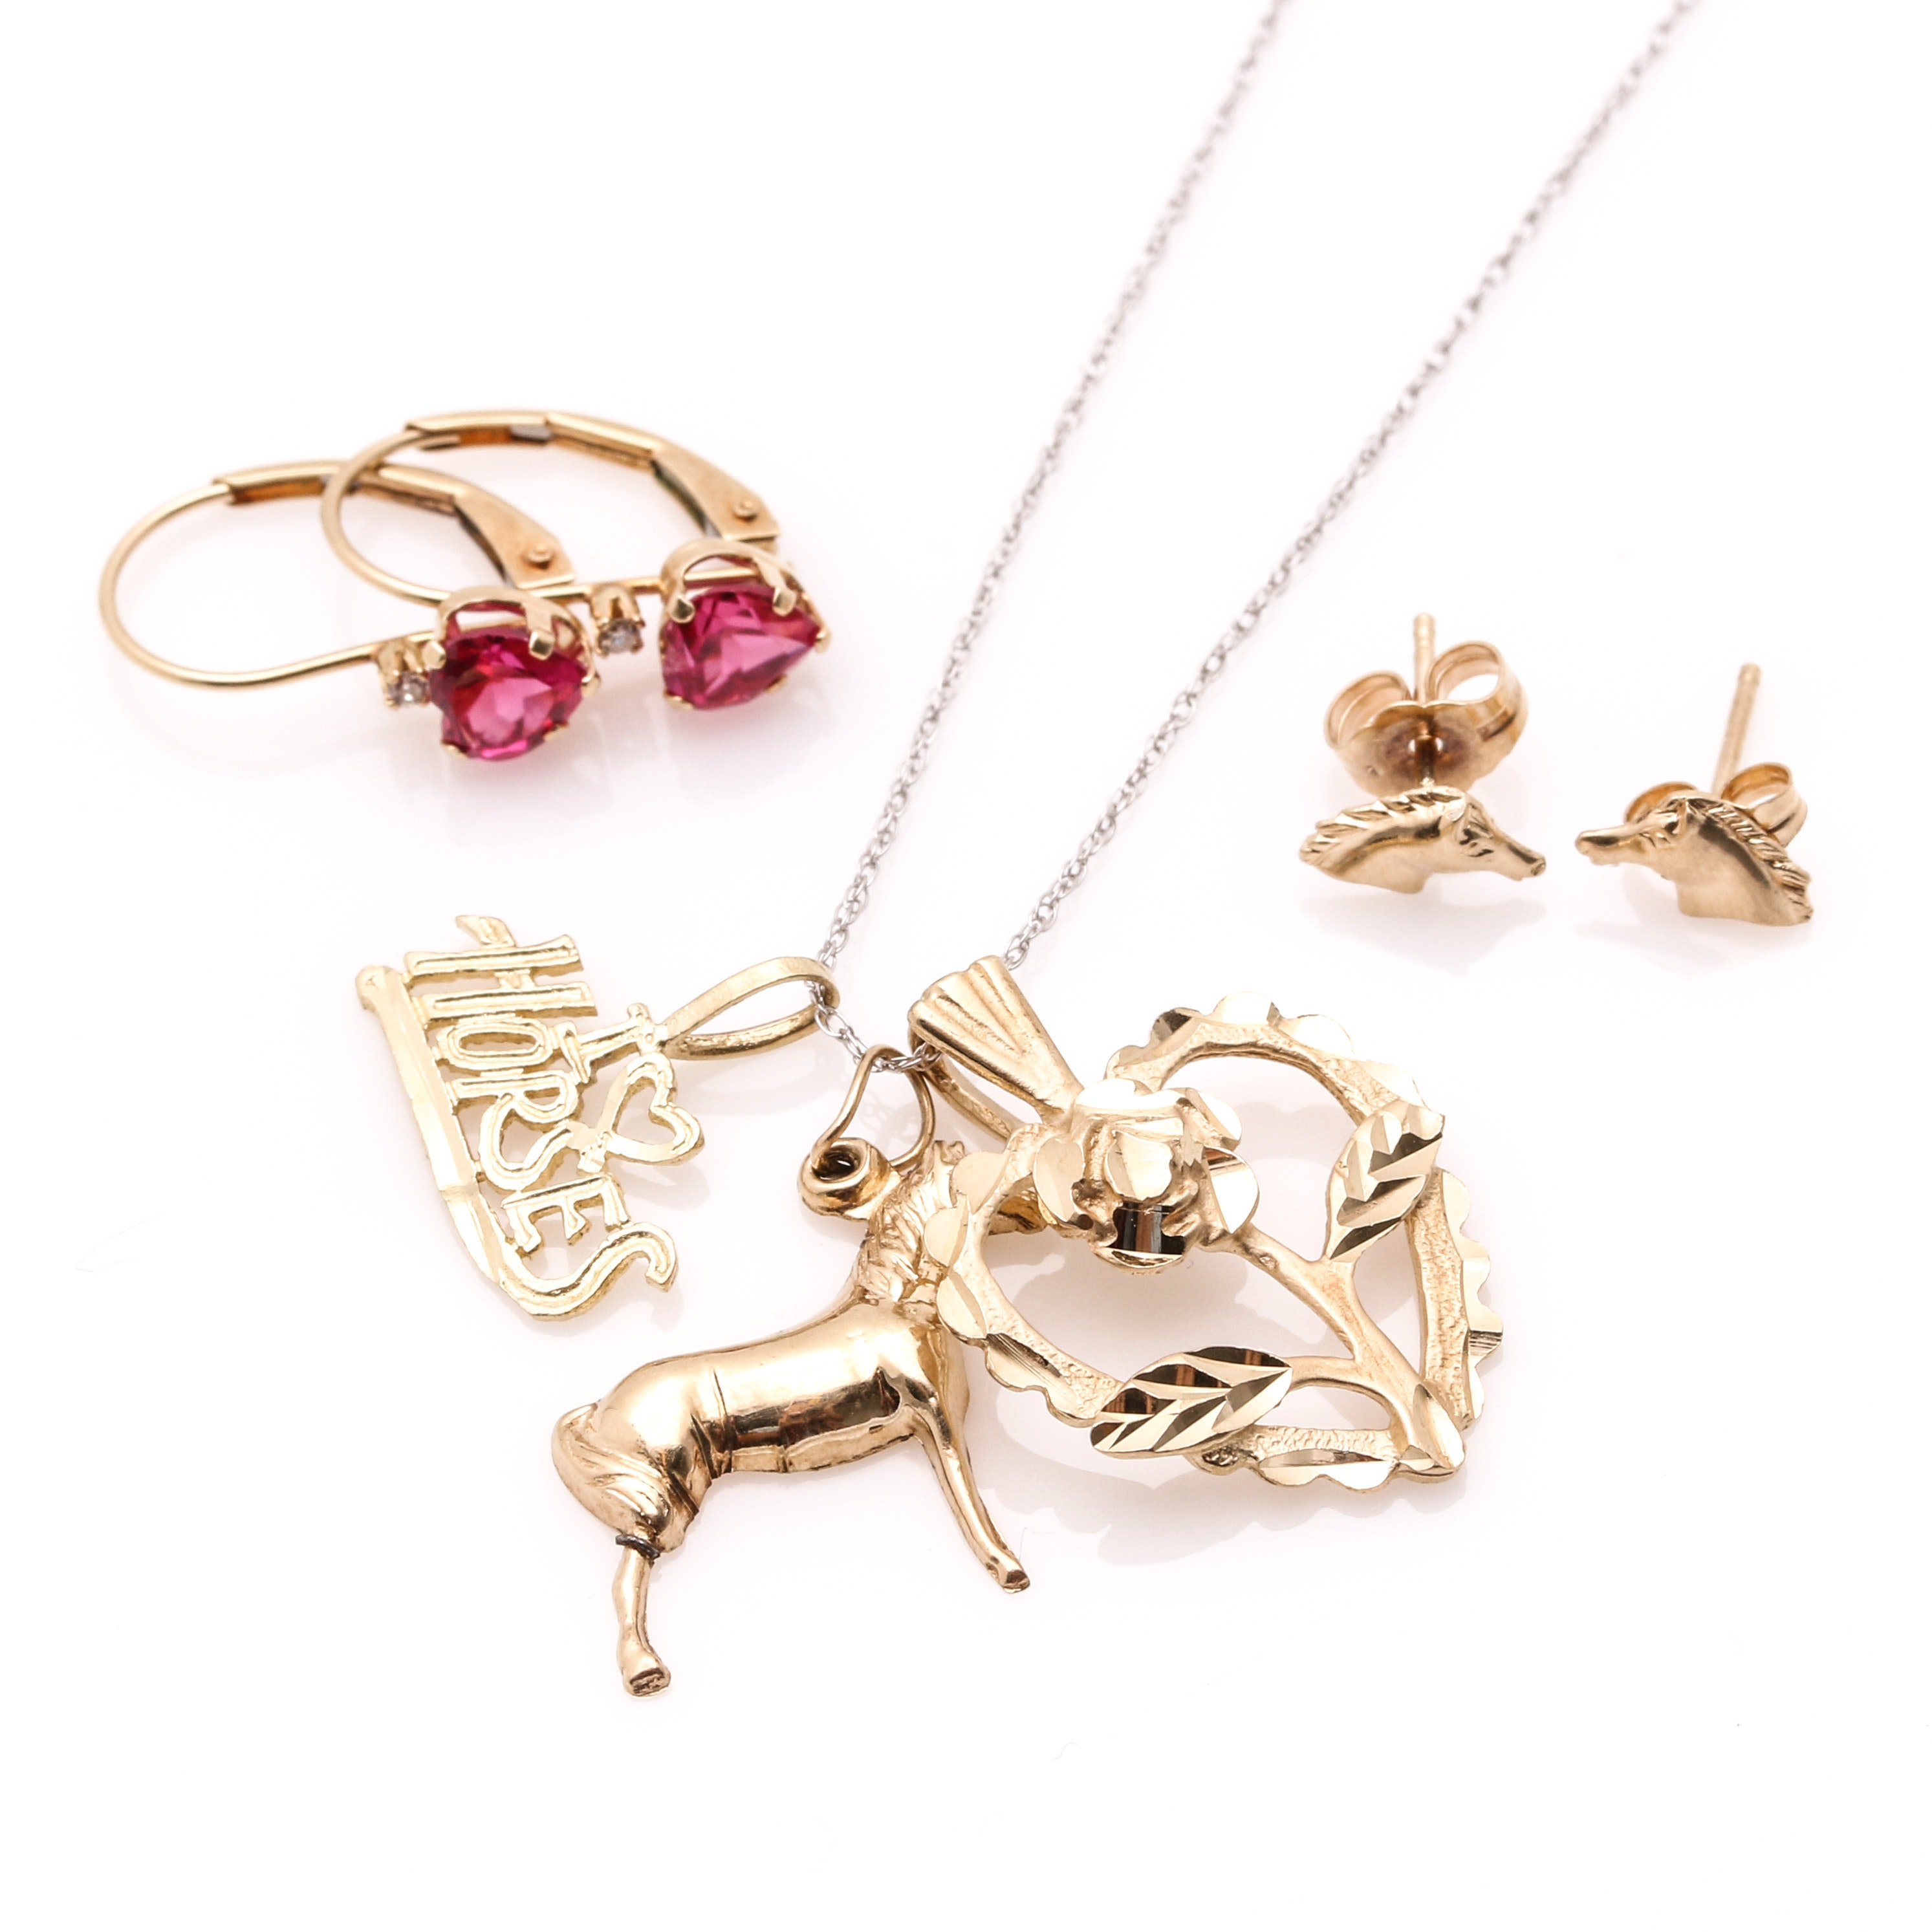 Mixed Gold Assortment of Jewelry